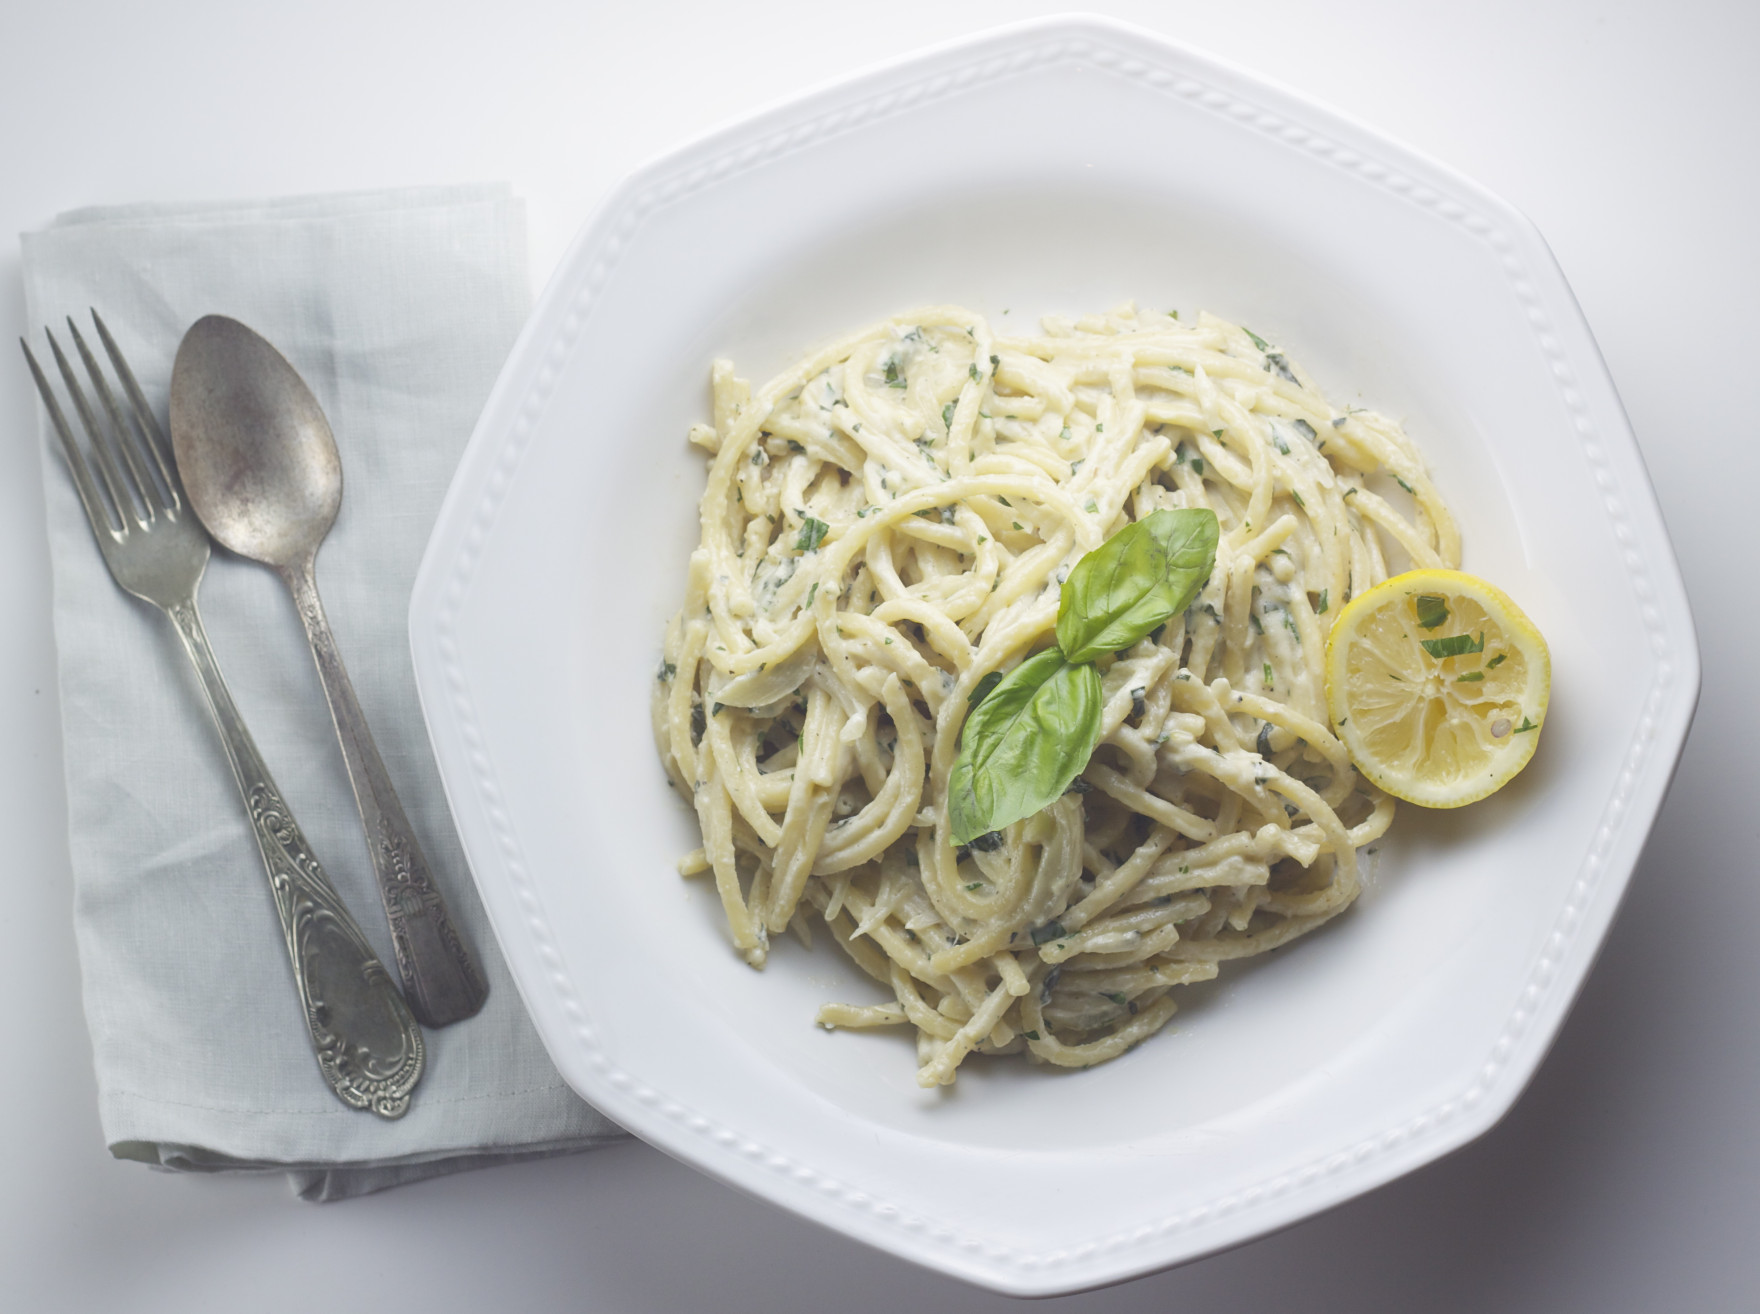 vegan cashew cream basil lemon pasta